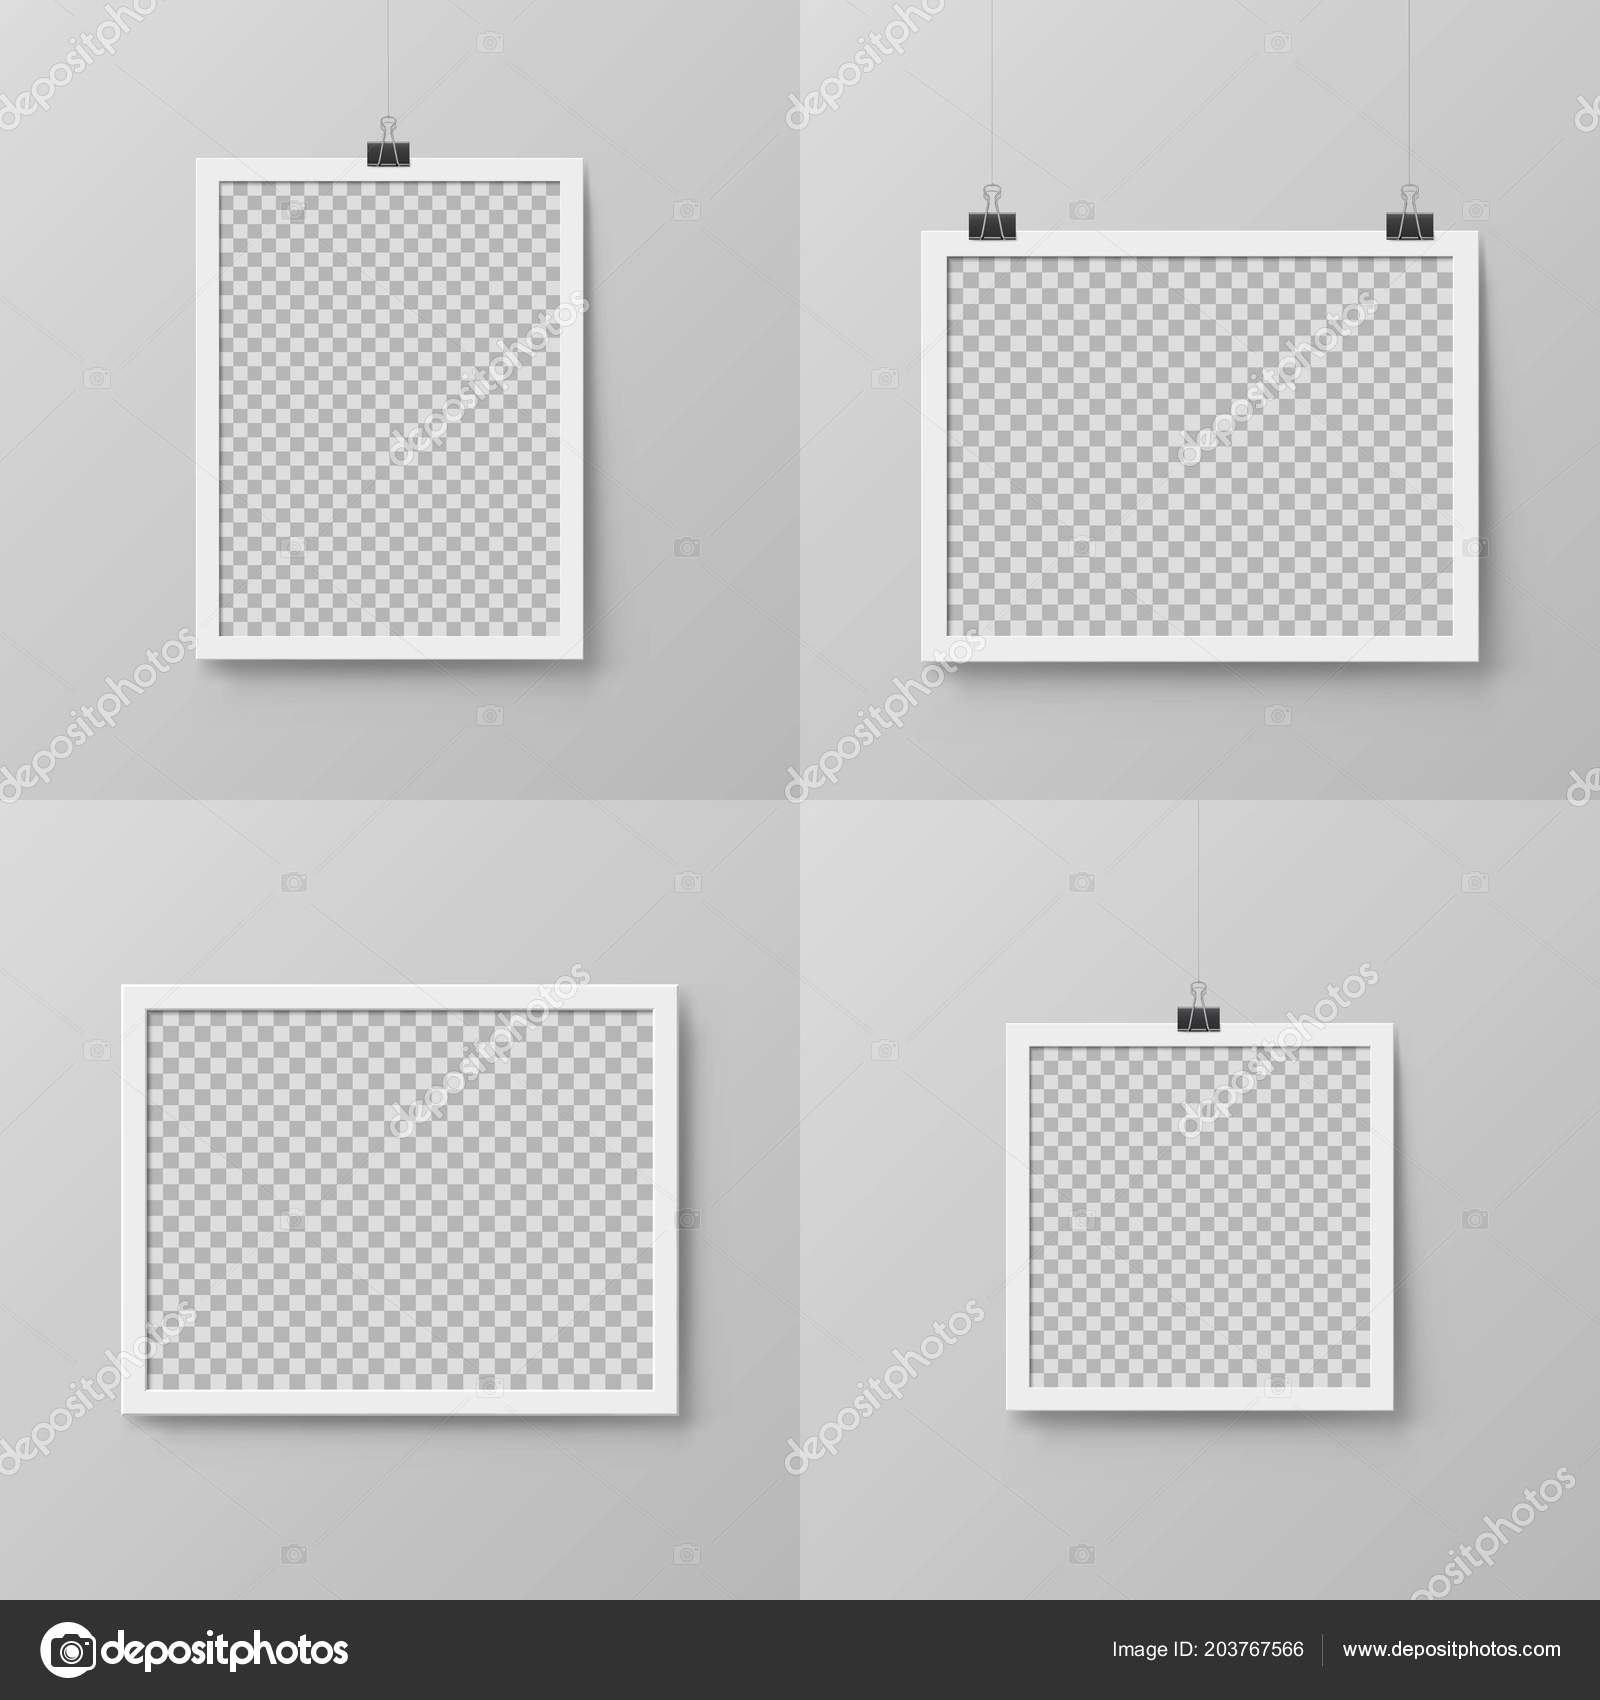 Vertical And Horizontal Realistic Photo Frames Stock Vector